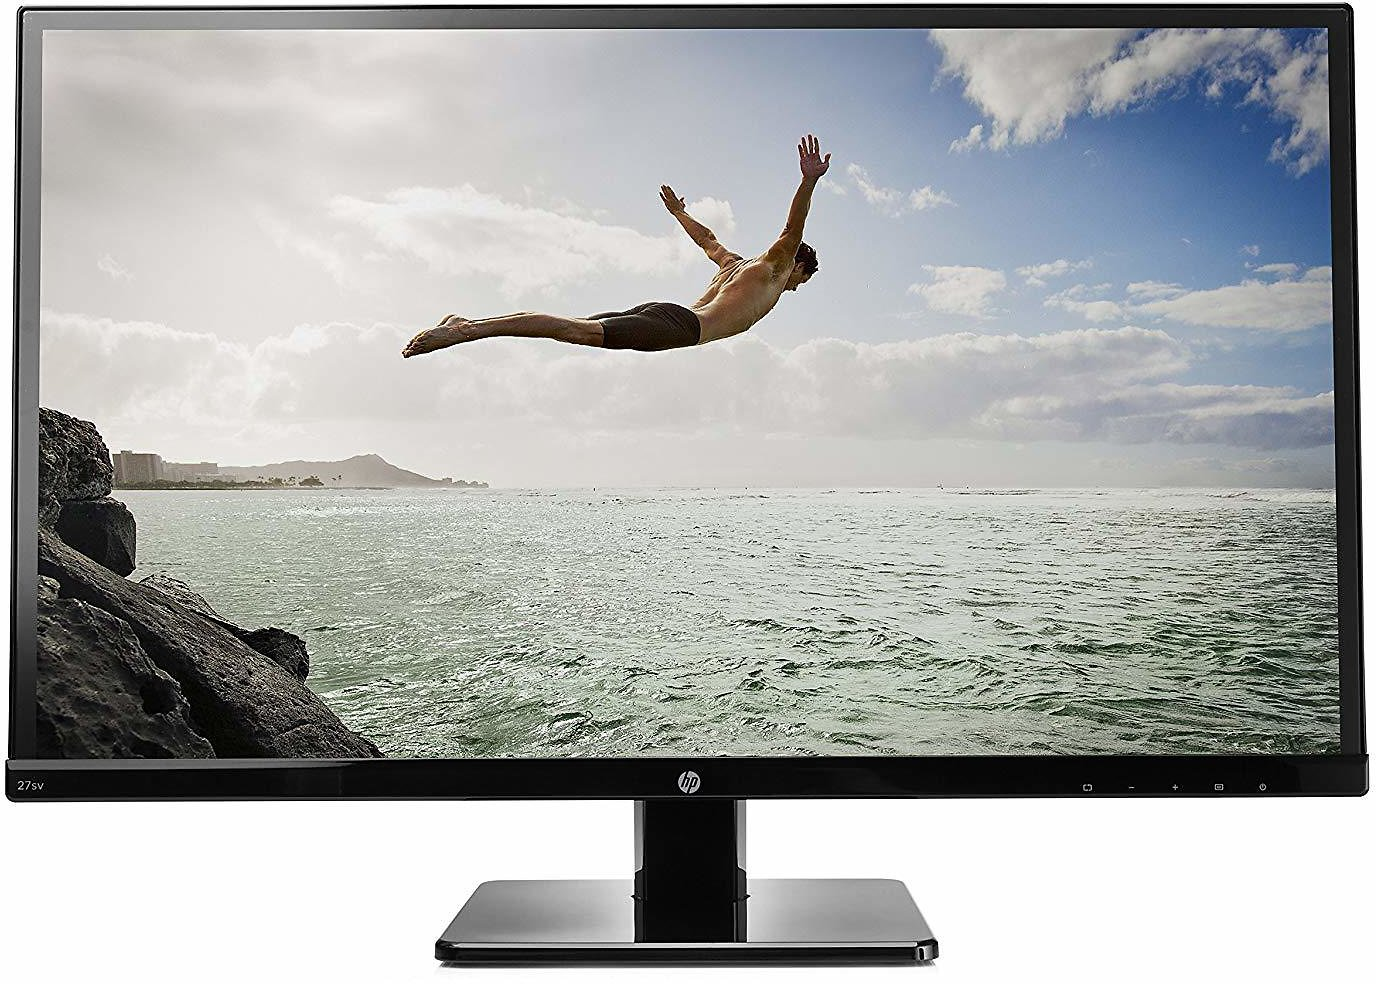 HP 27-inch FHD IPS Monitor with Tilt Adjustment and Built-in Speakers (27sv, Black)